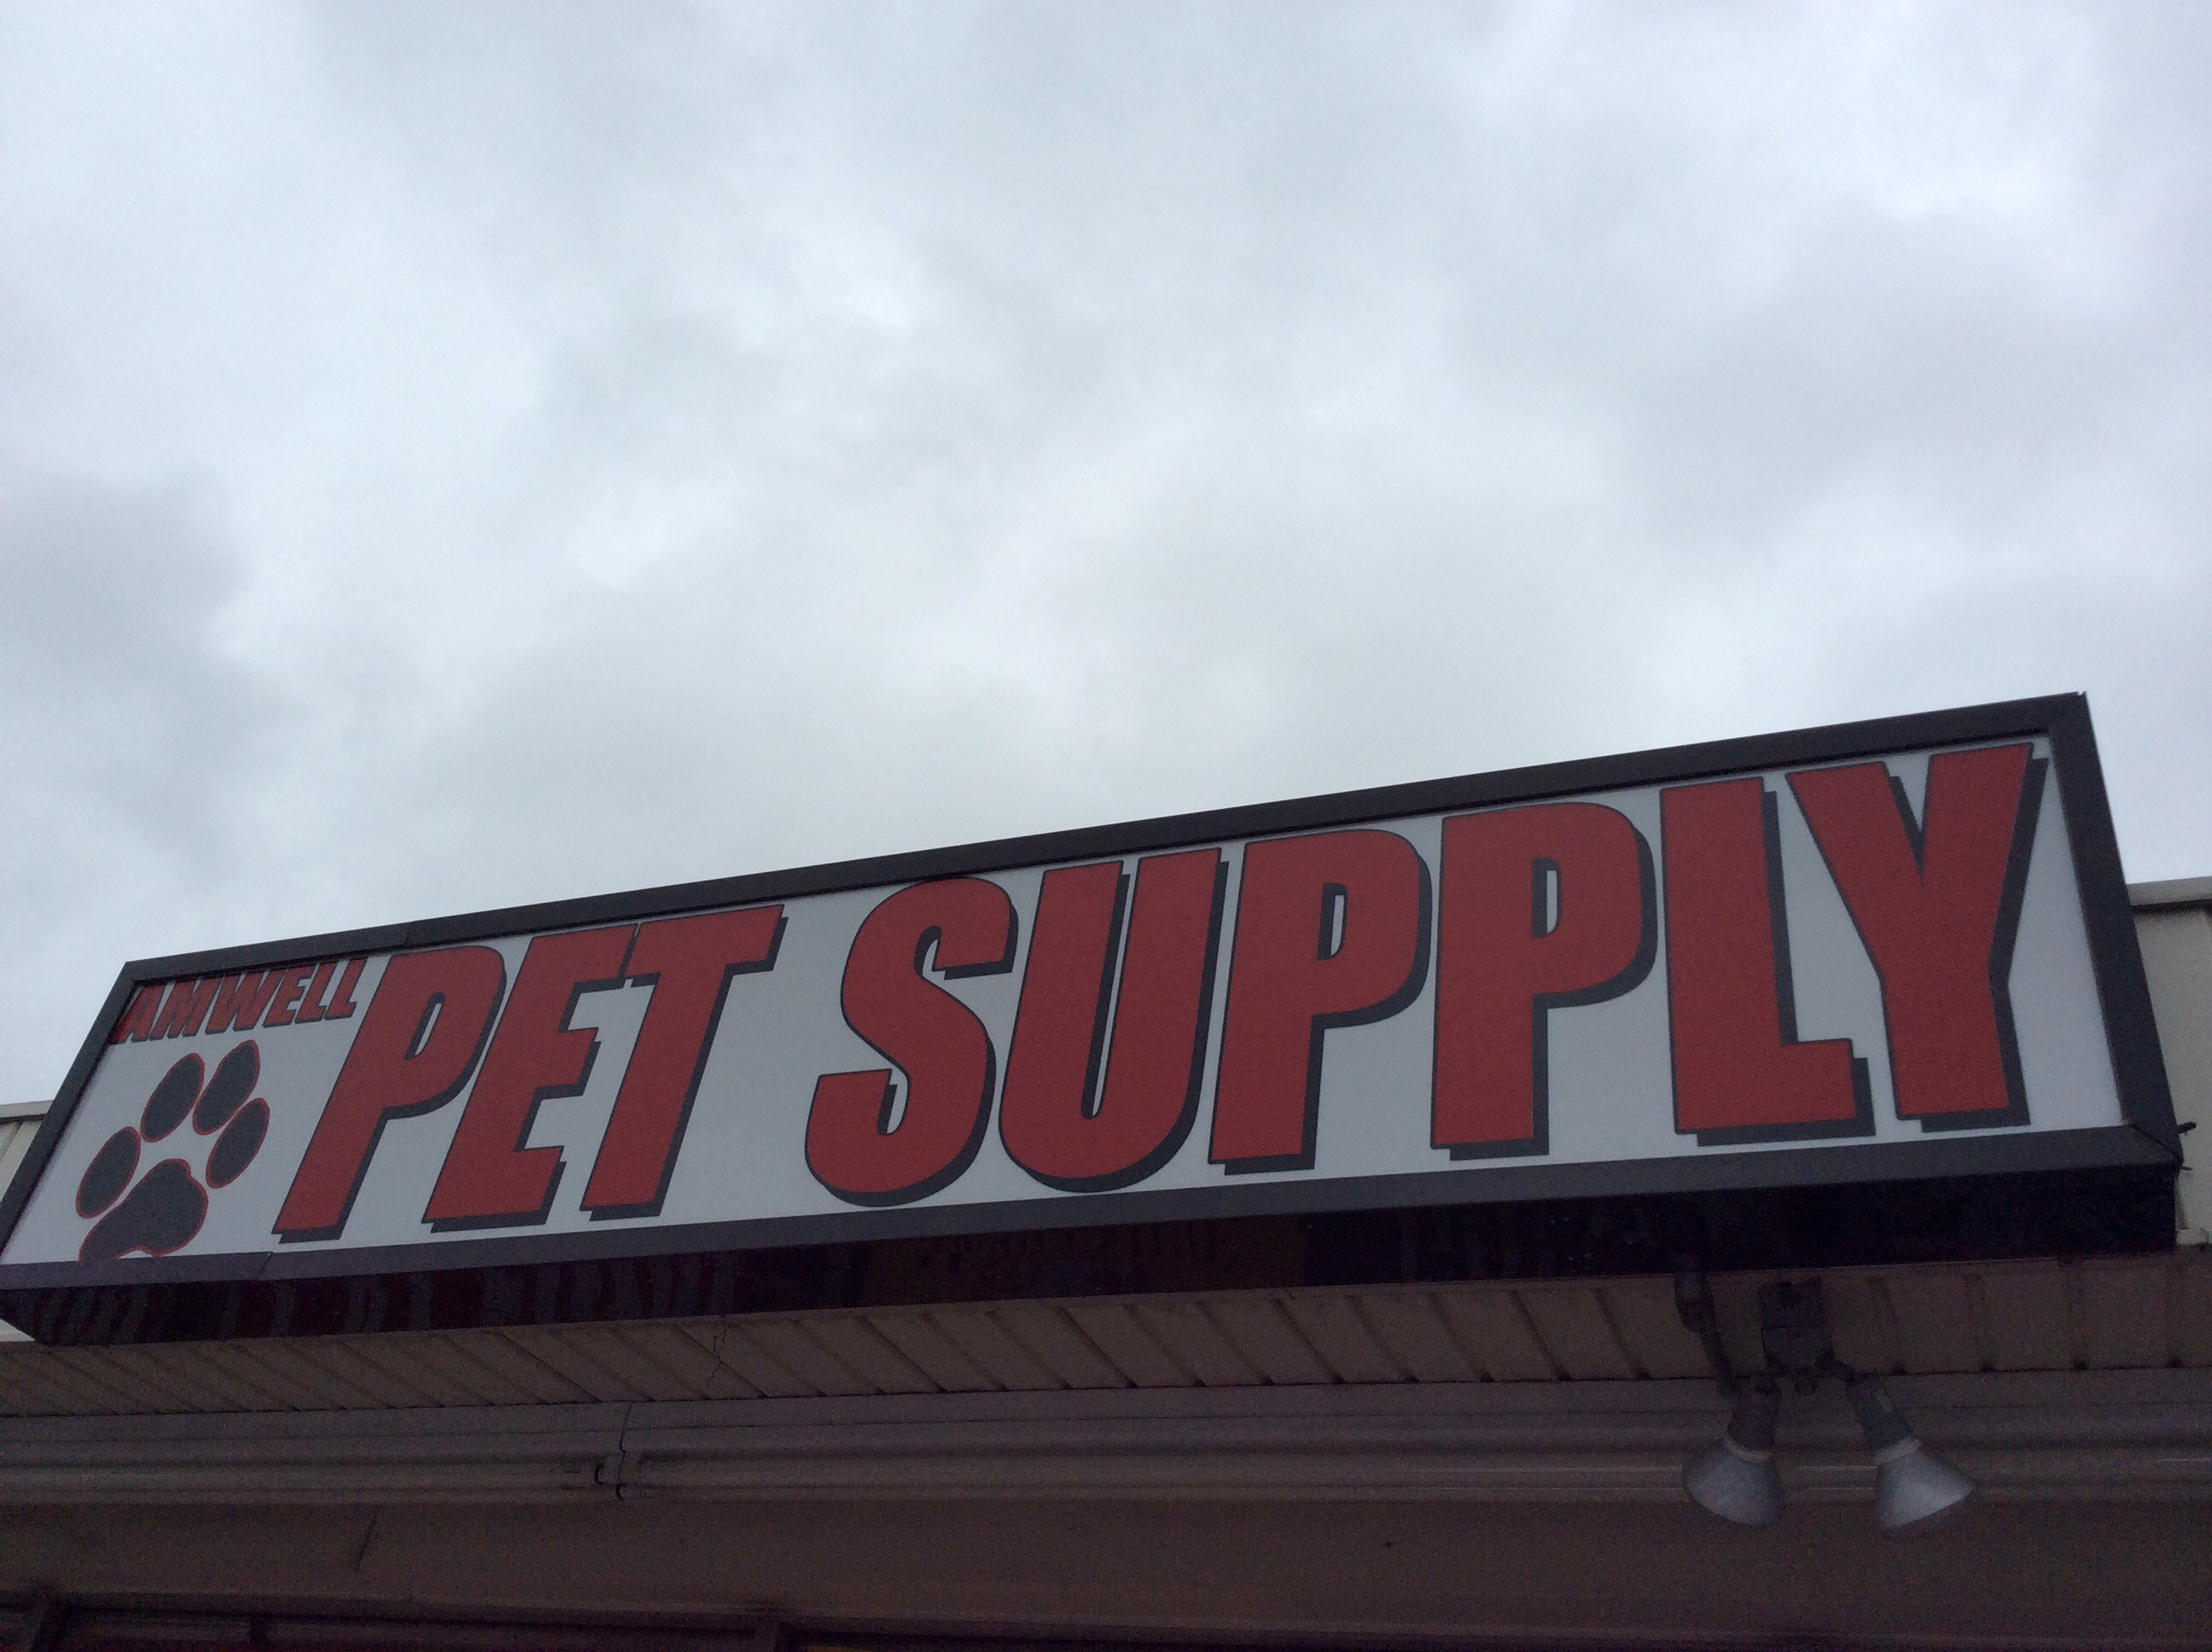 Amwell Pet Supply